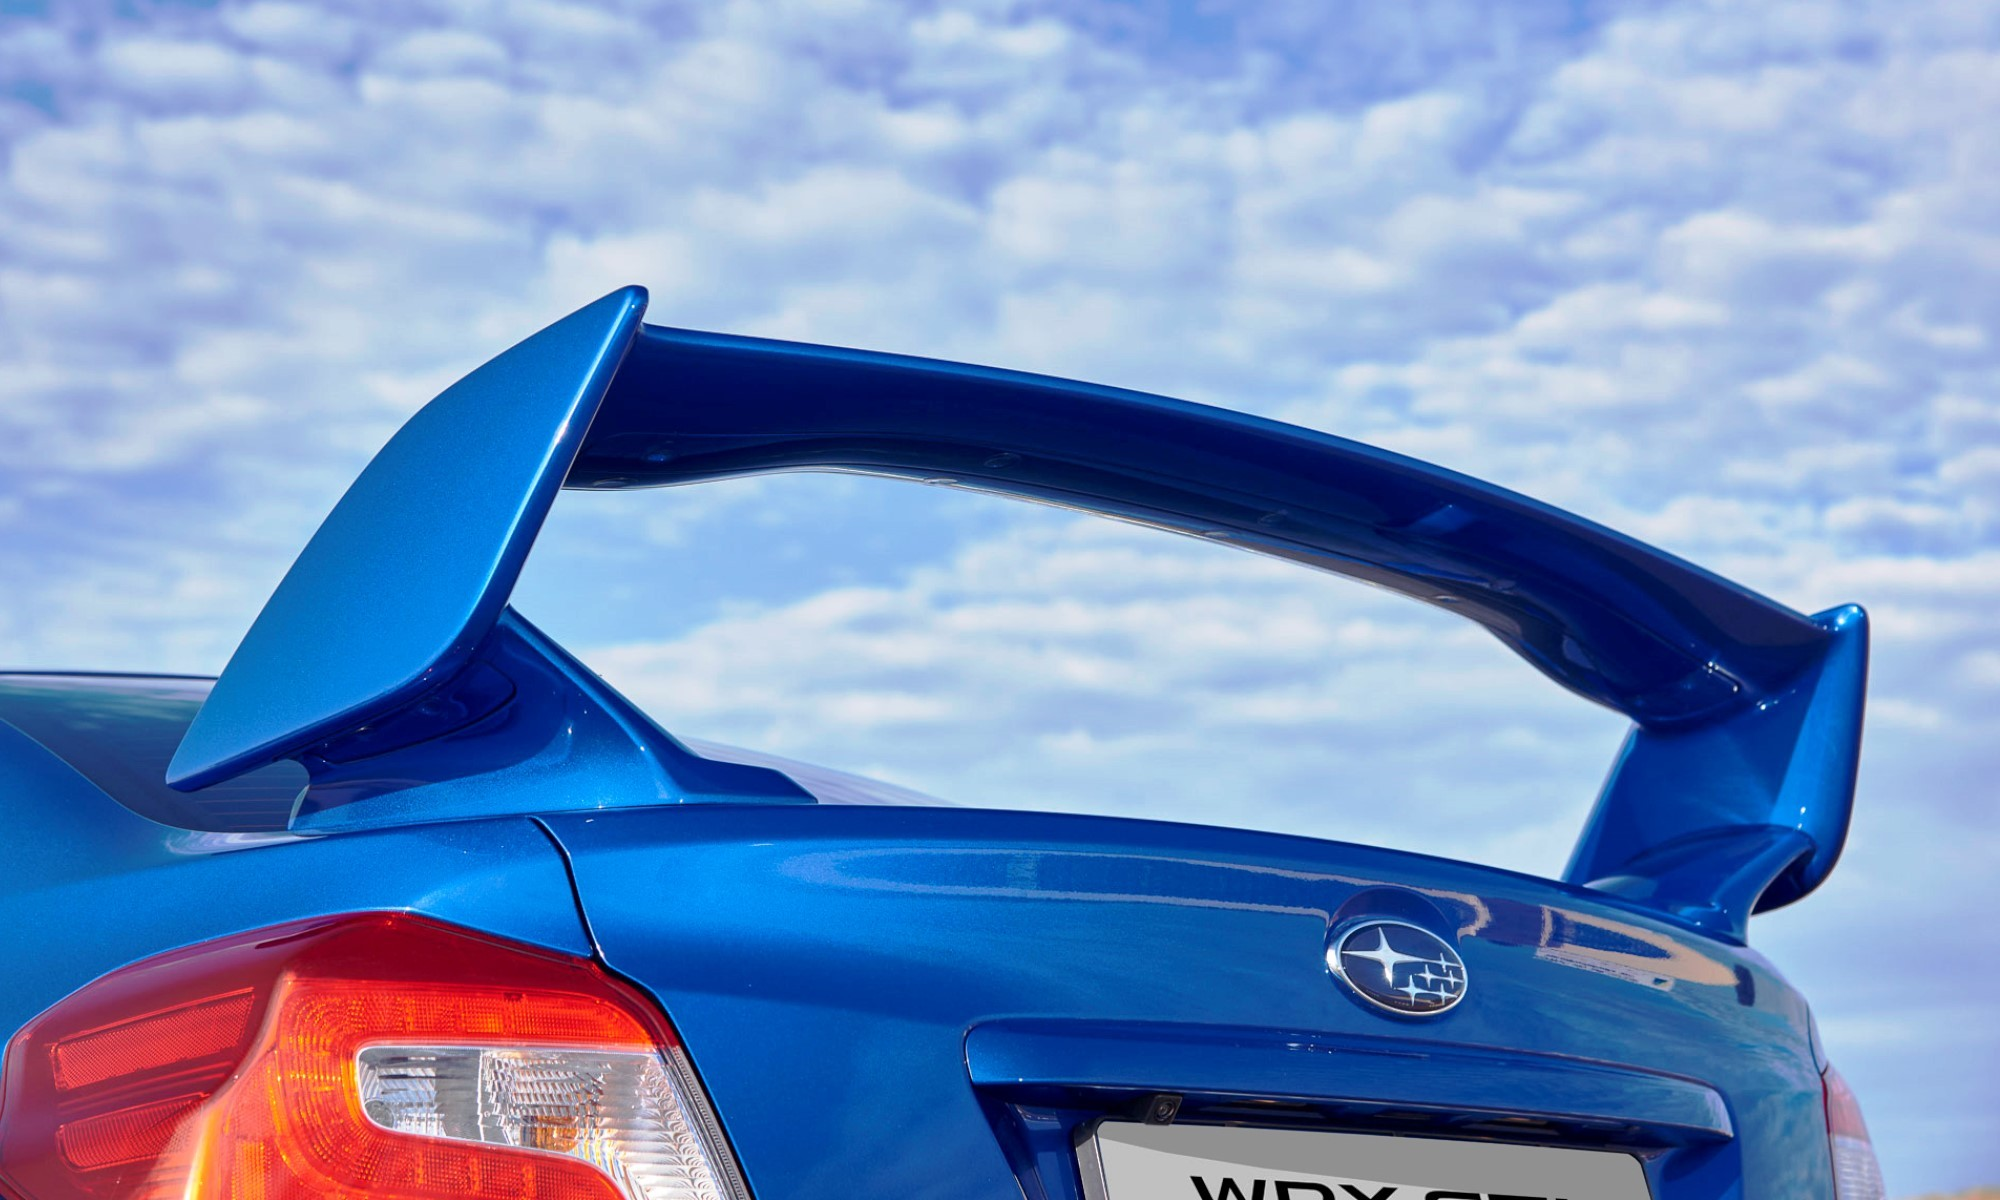 Subaru WRX STi Diamond Edition30 wing